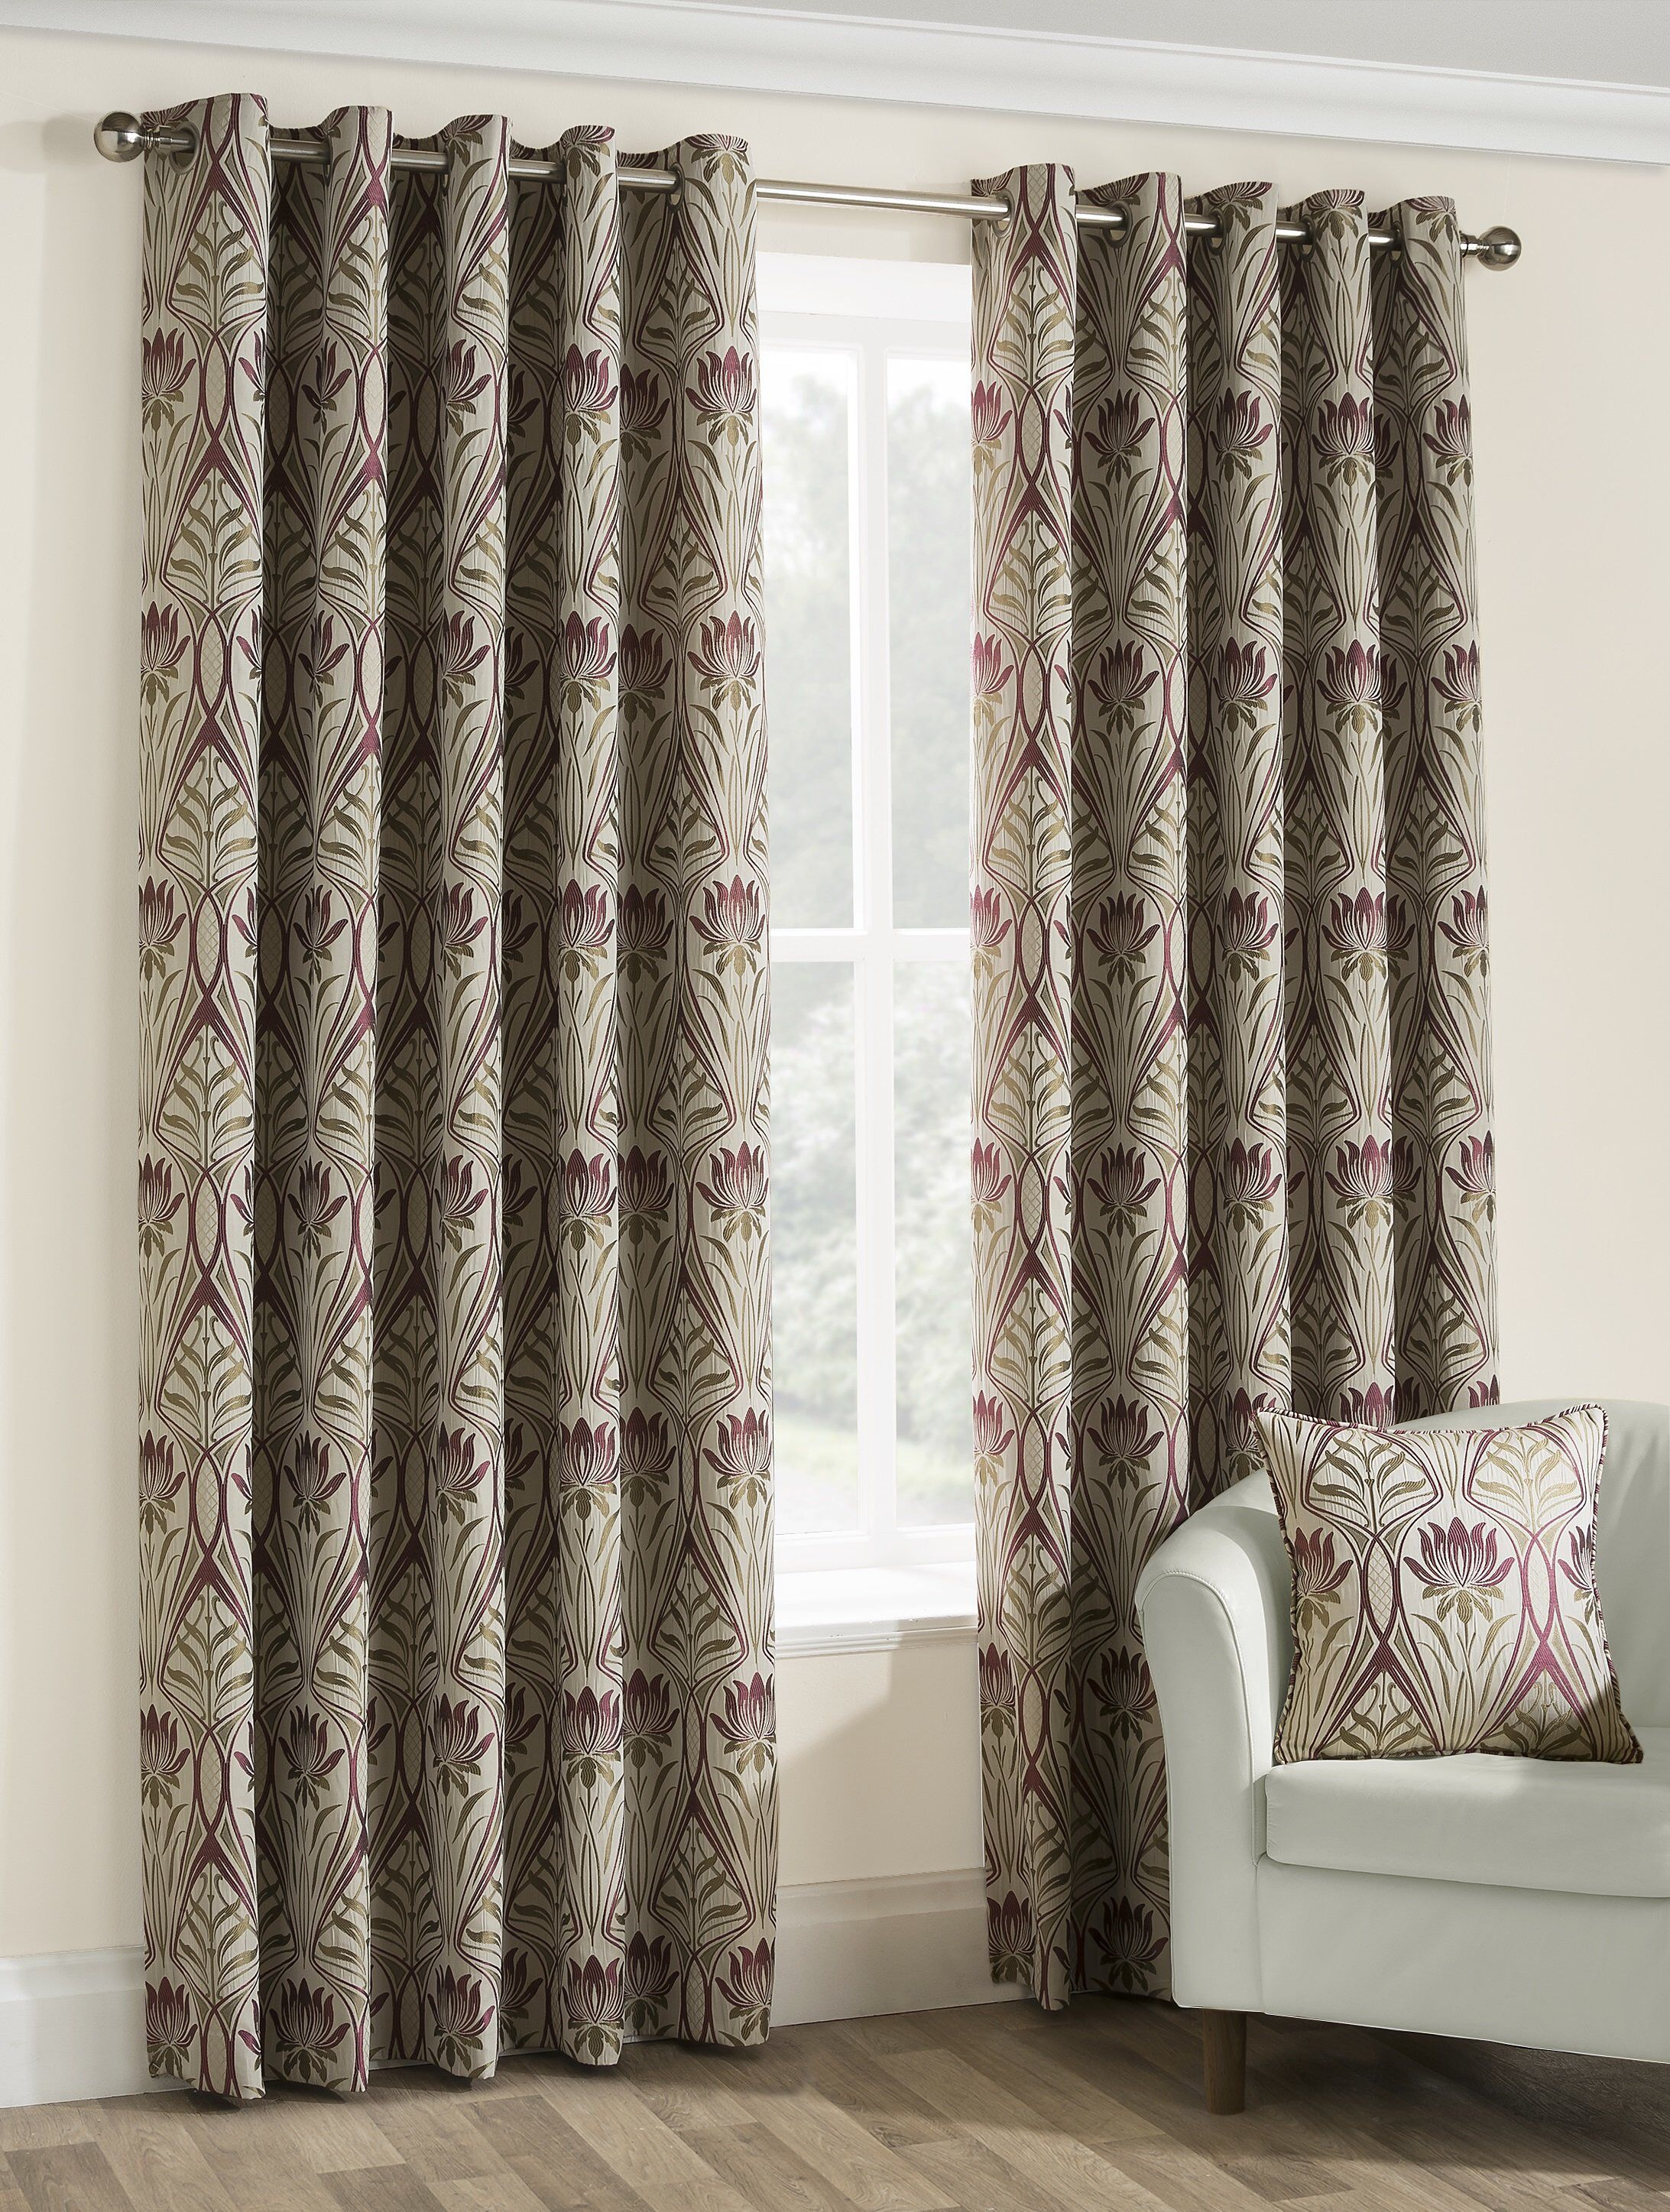 Curtain Insulation Fabric Mishawaka Eyelet Room Darkening Curtains New House Room